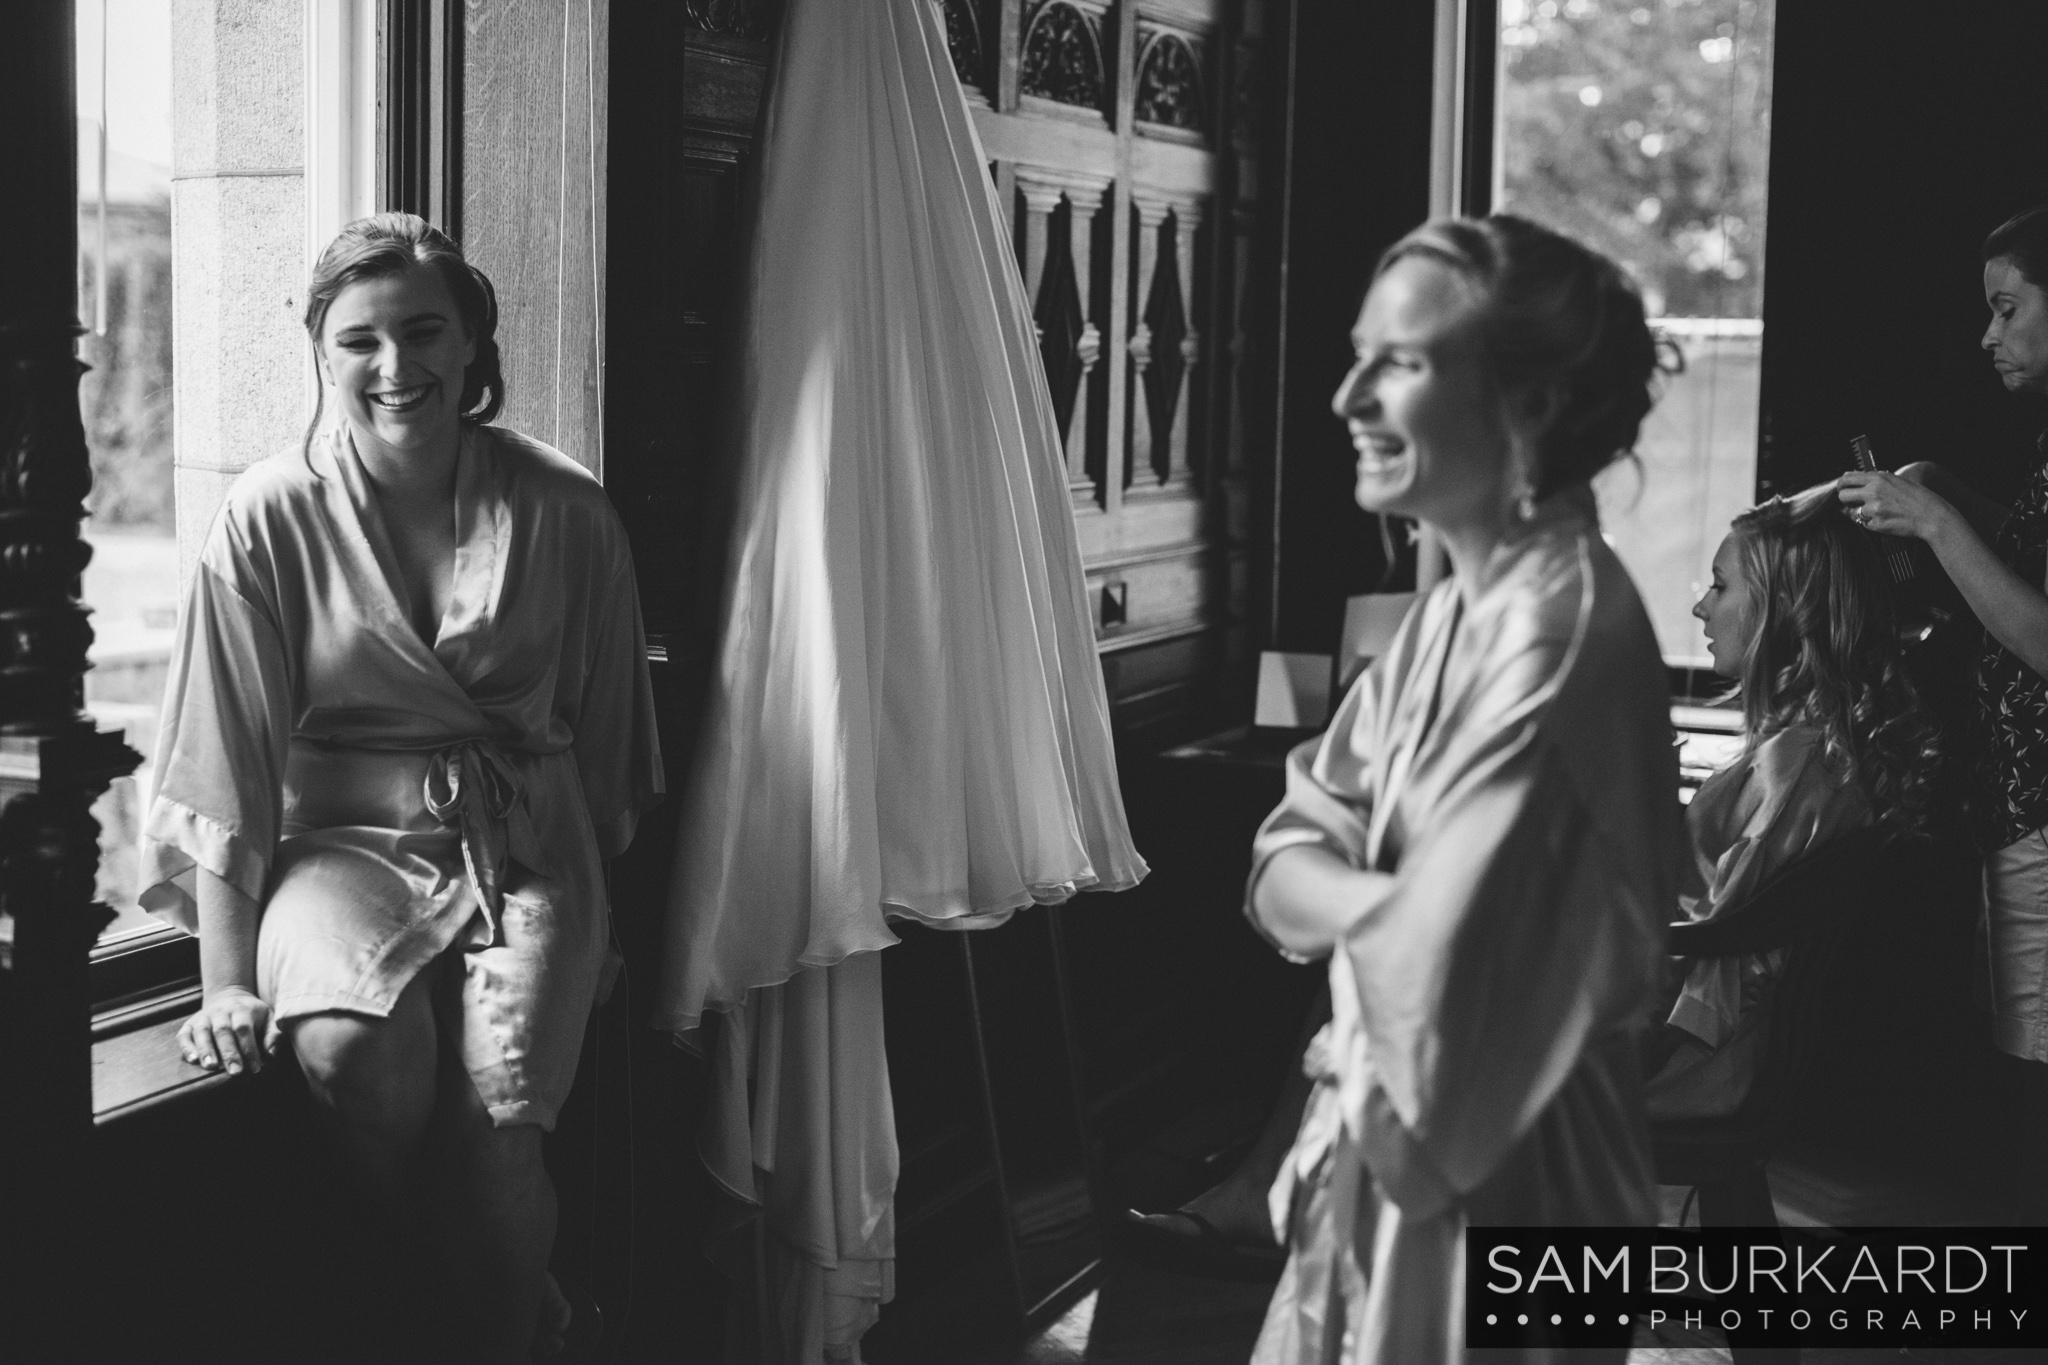 samburkardt_platz_moore_connecticut_branford_house_long_island_sound_august_photography_wedding_glamour_pink_0004.jpg